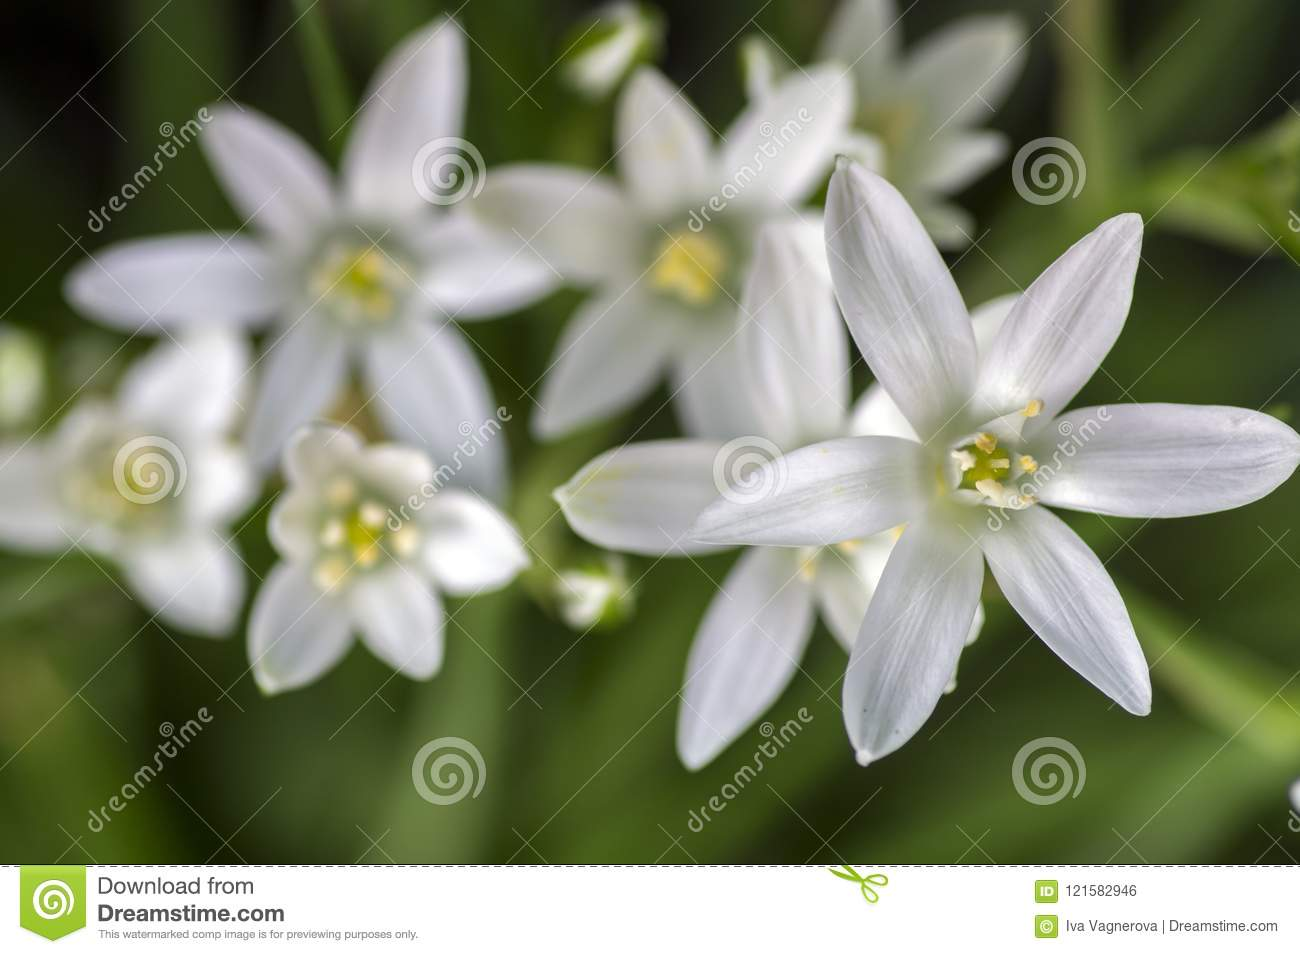 Ornithogalum Umbellatum Grass Lily In Bloom Small Ornamental And